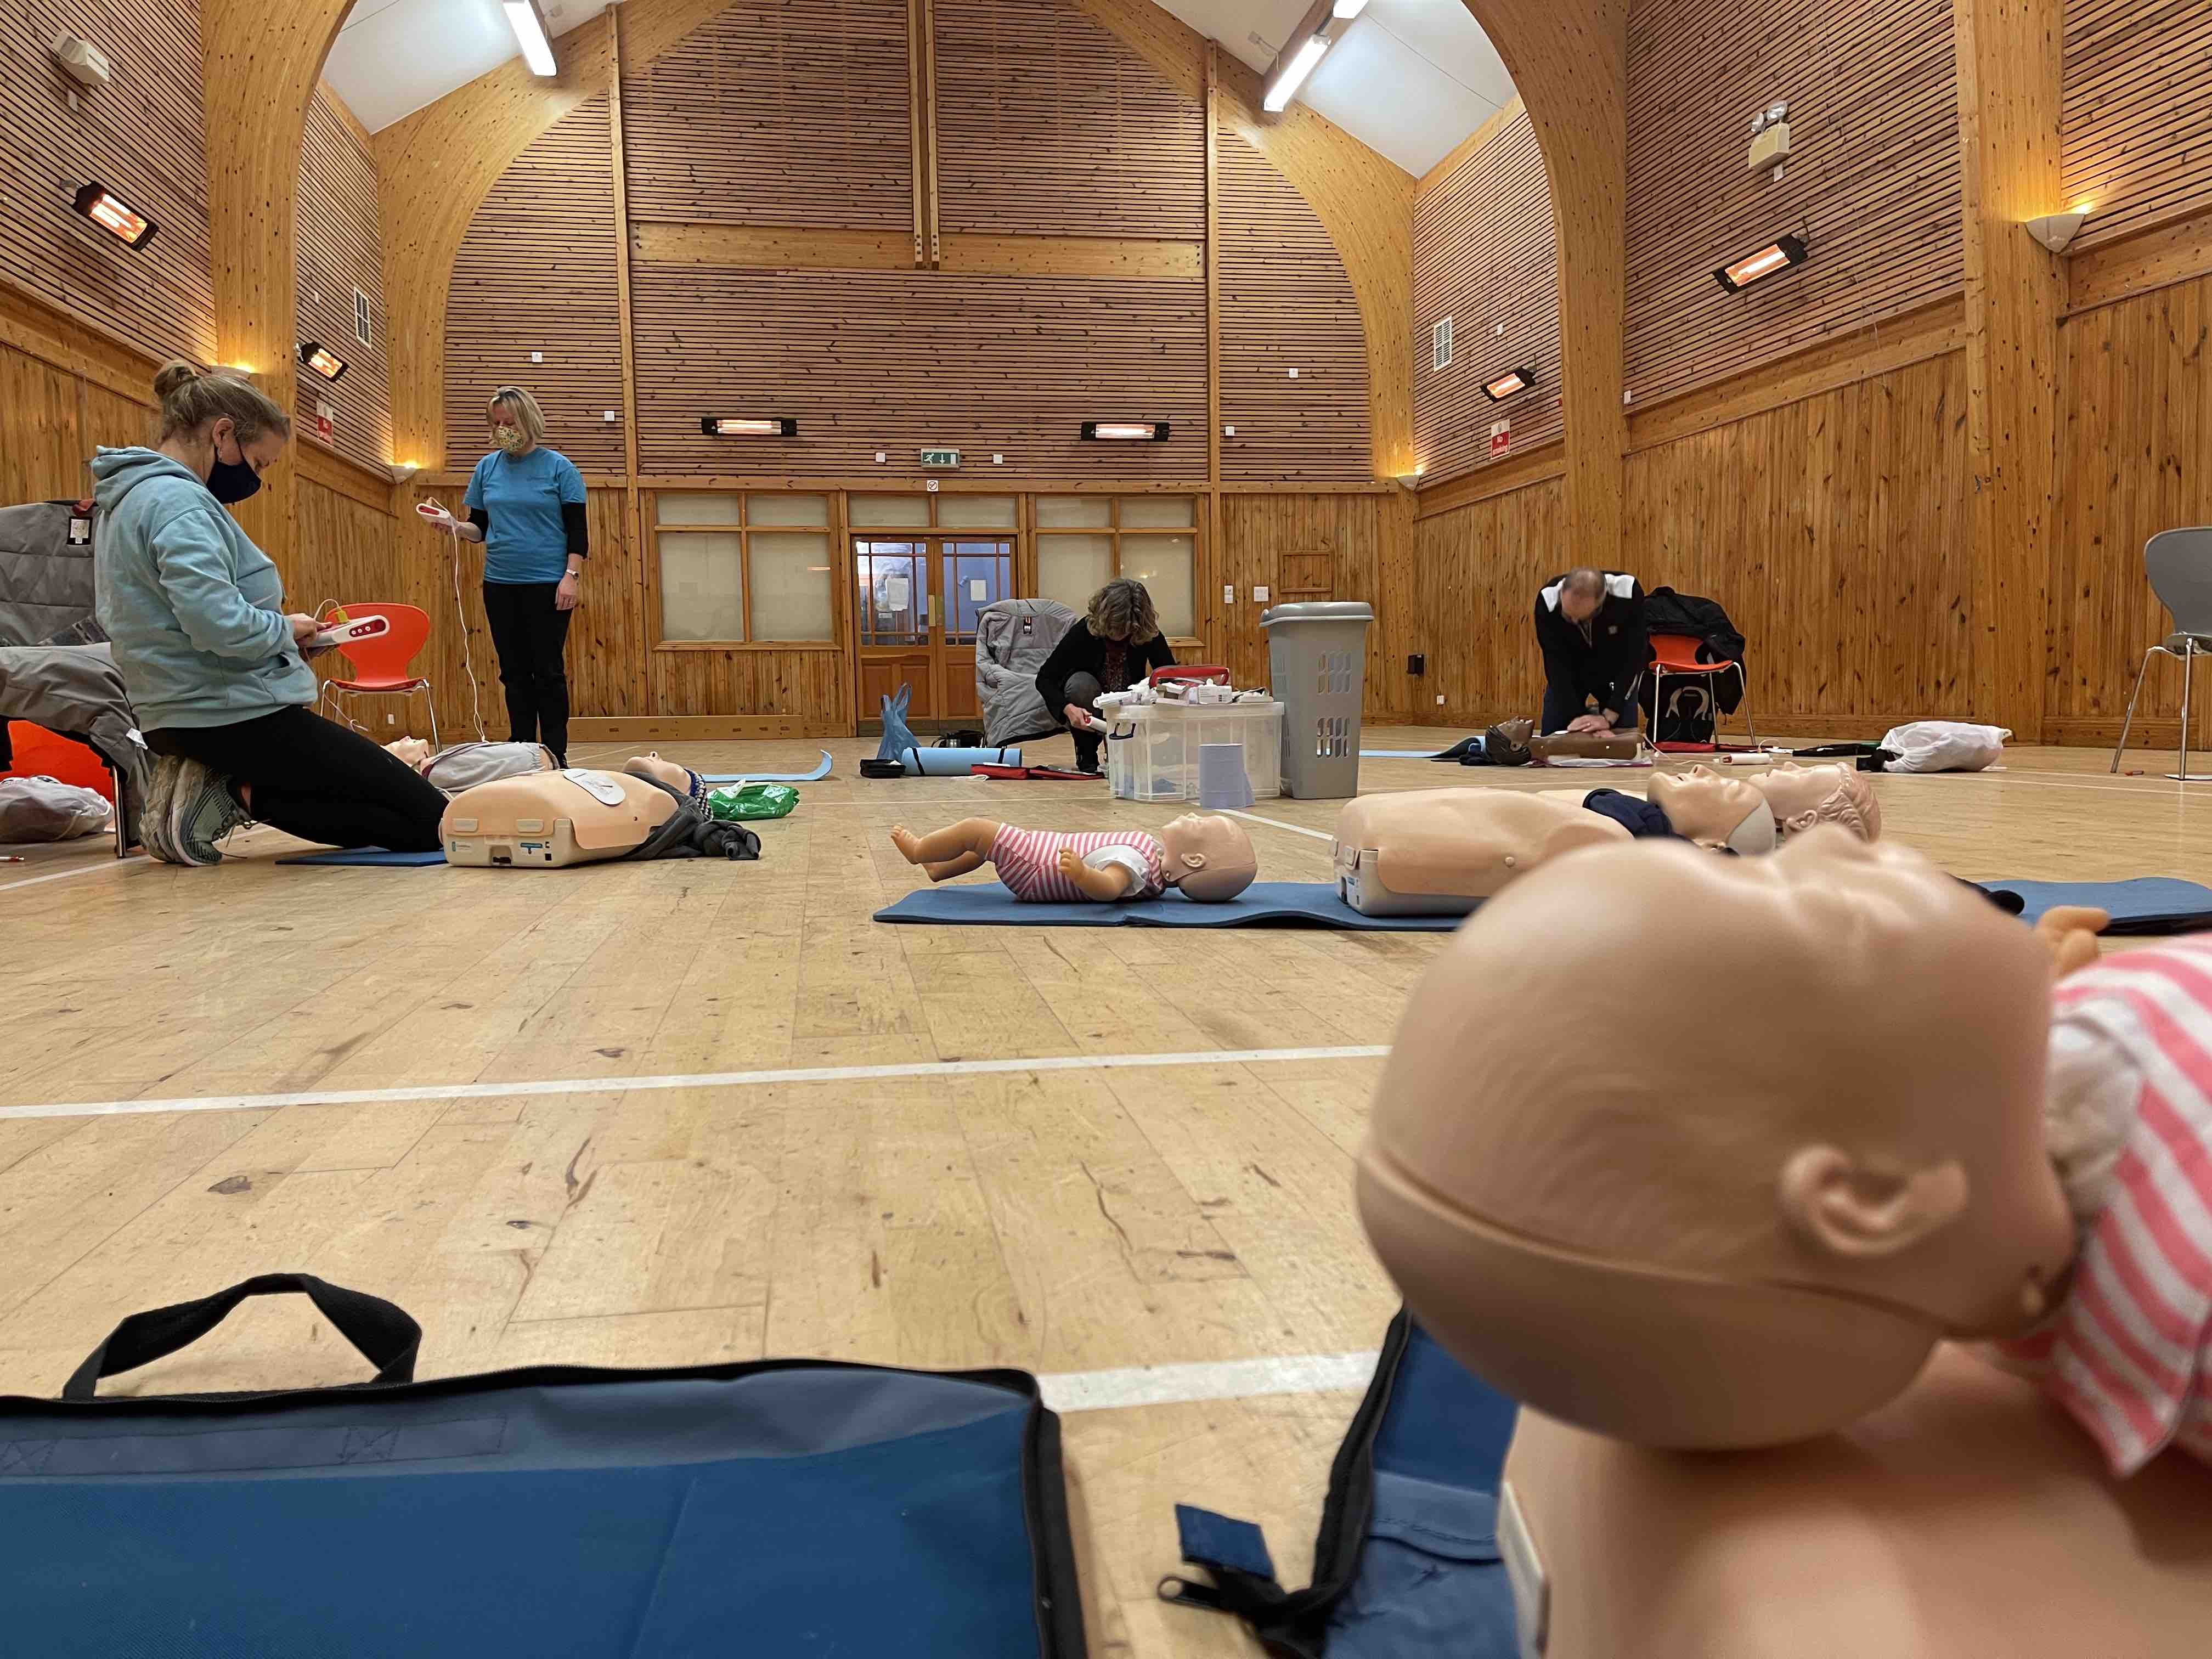 First Aid training in your community